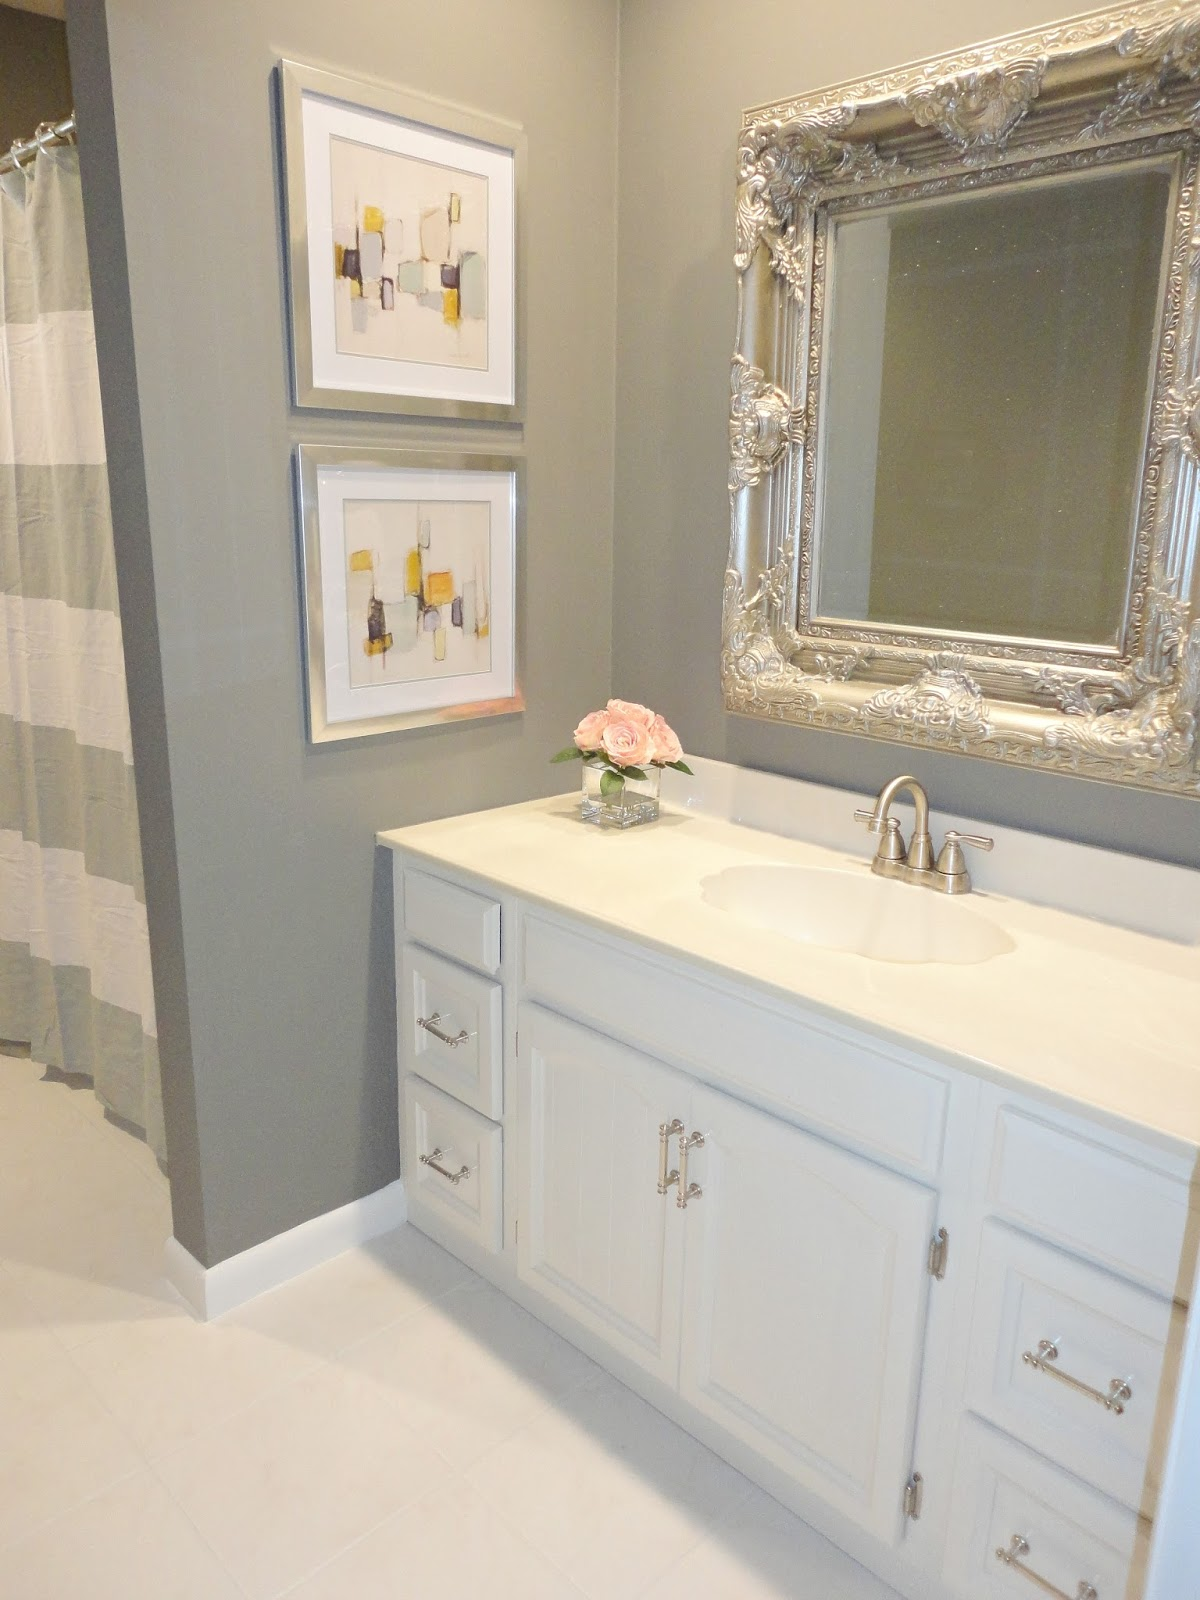 ... her 1970s bathroom on the cheap just by using paint! LOVE this